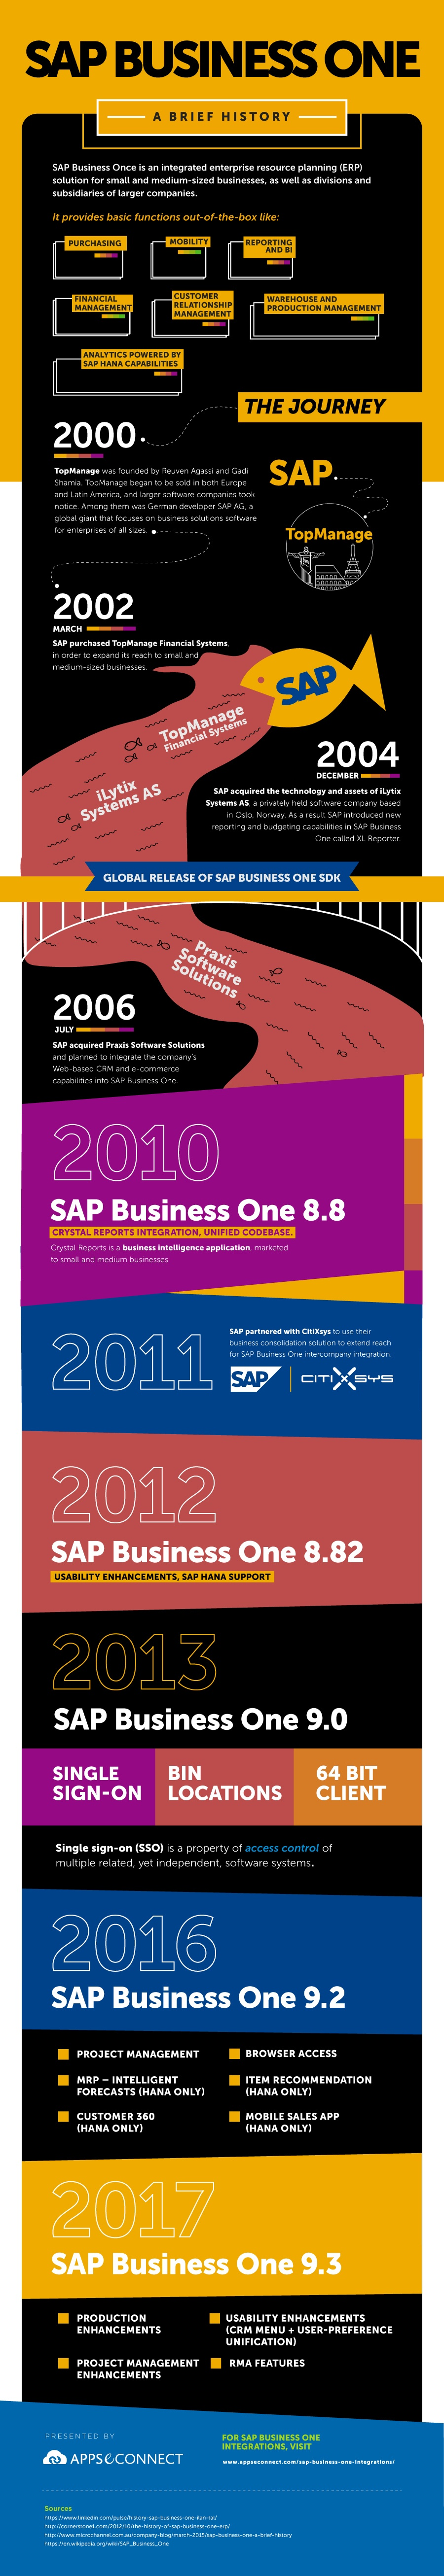 The-History-of-SAP-Business-One